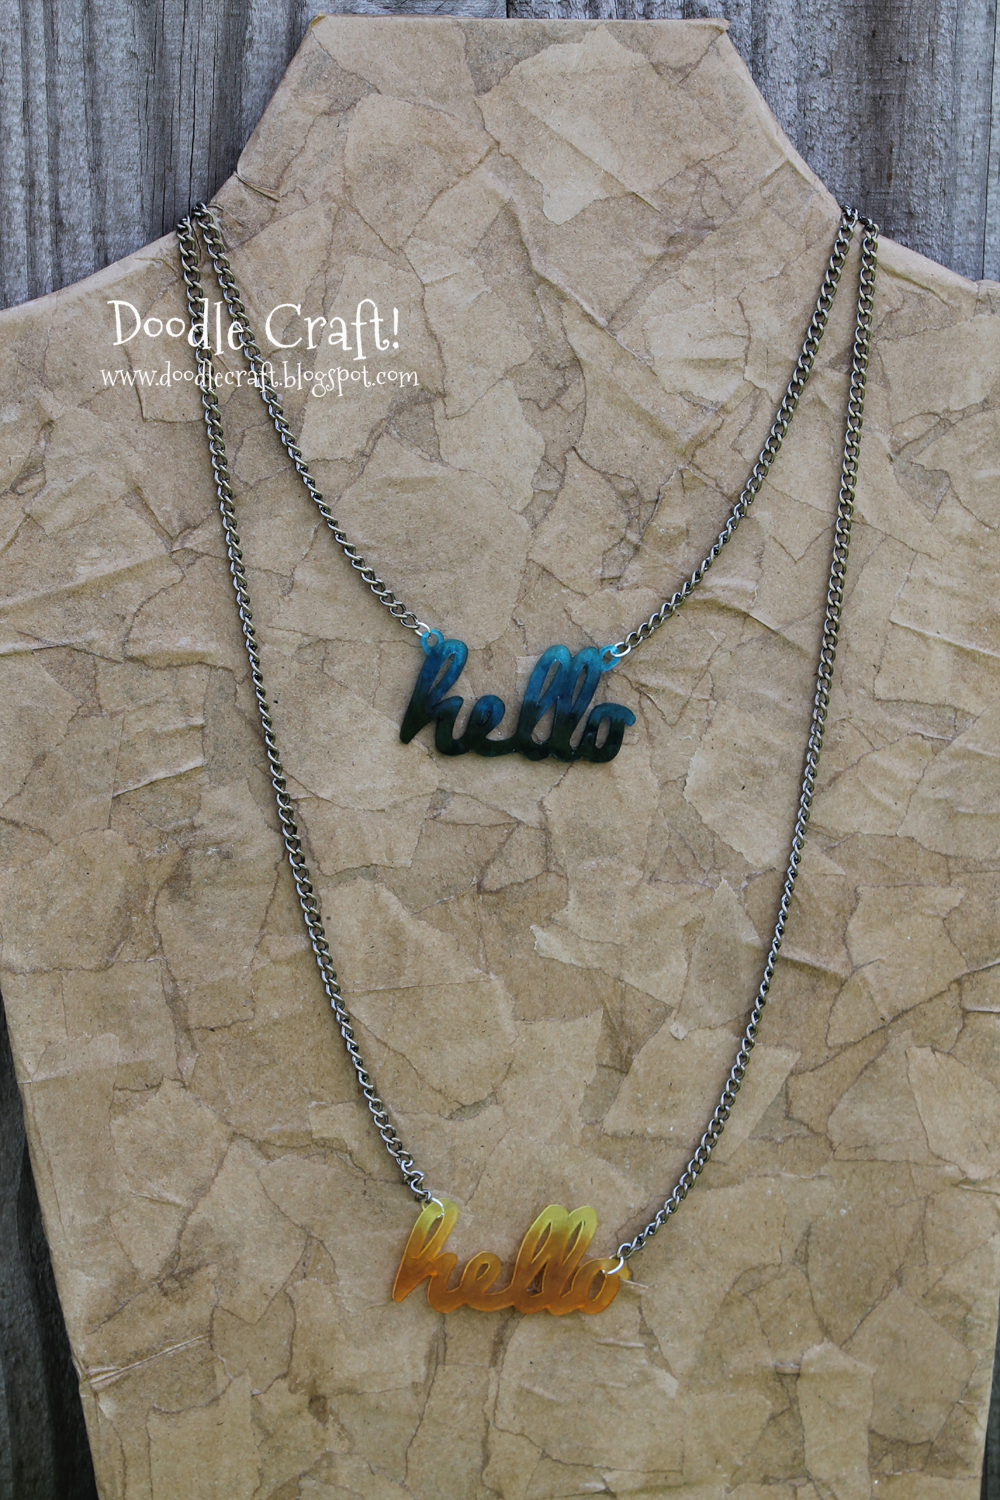 Doodlecraft Hello Custom Acrylic Word Necklace With Shrinky Dinks